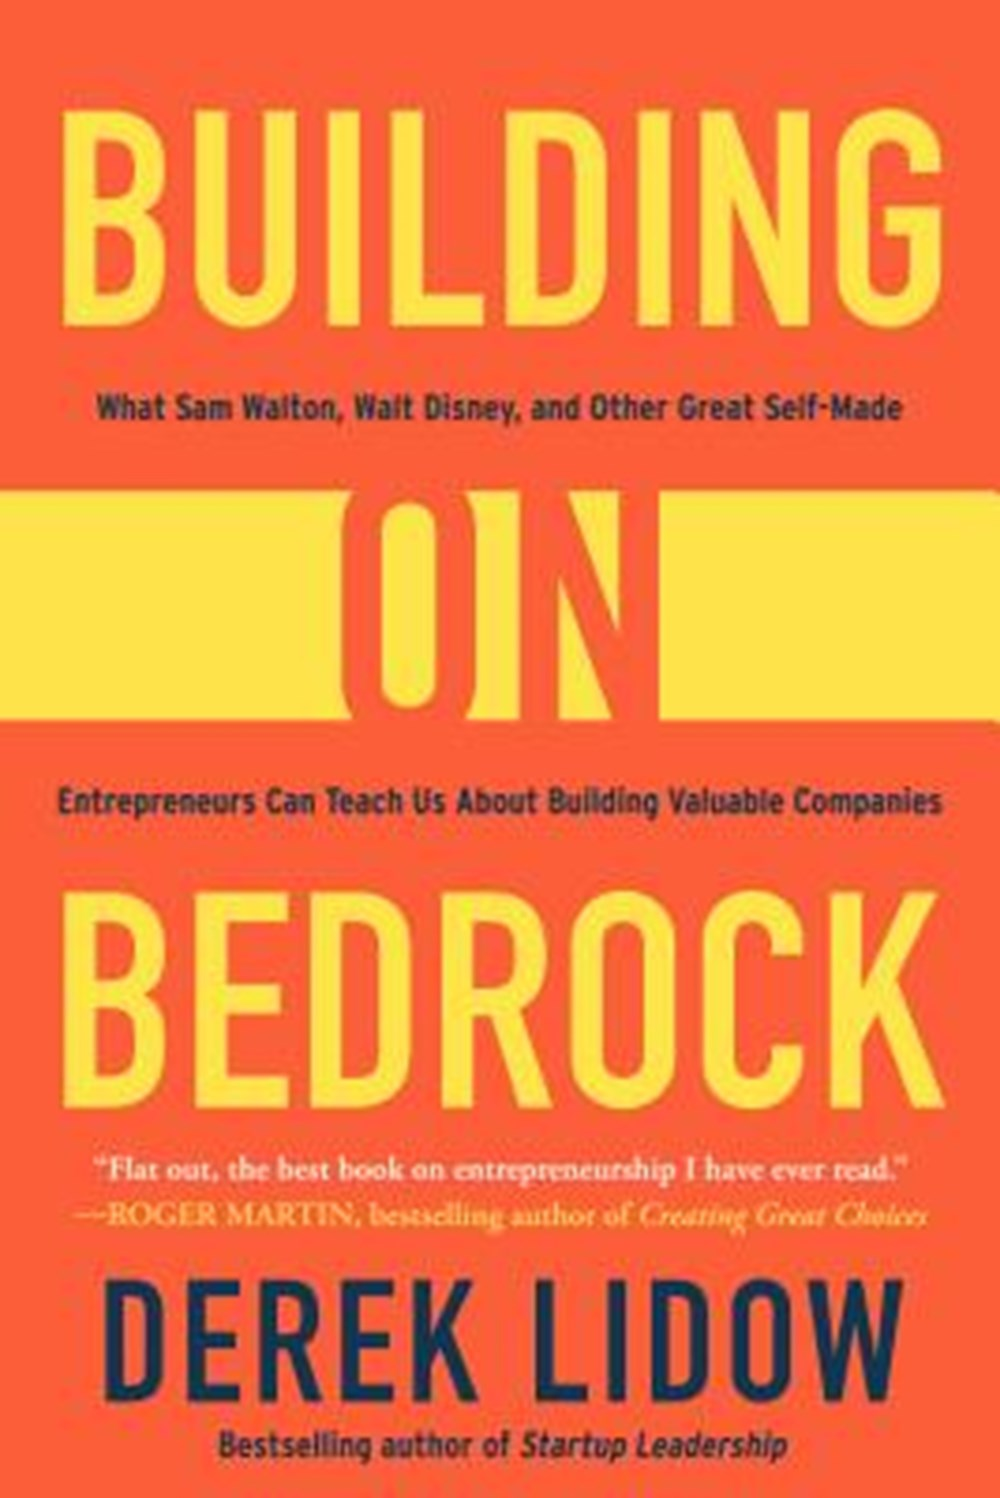 Building on Bedrock What Sam Walton, Walt Disney, and Other Great Self-Made Entrepreneurs Can Teach